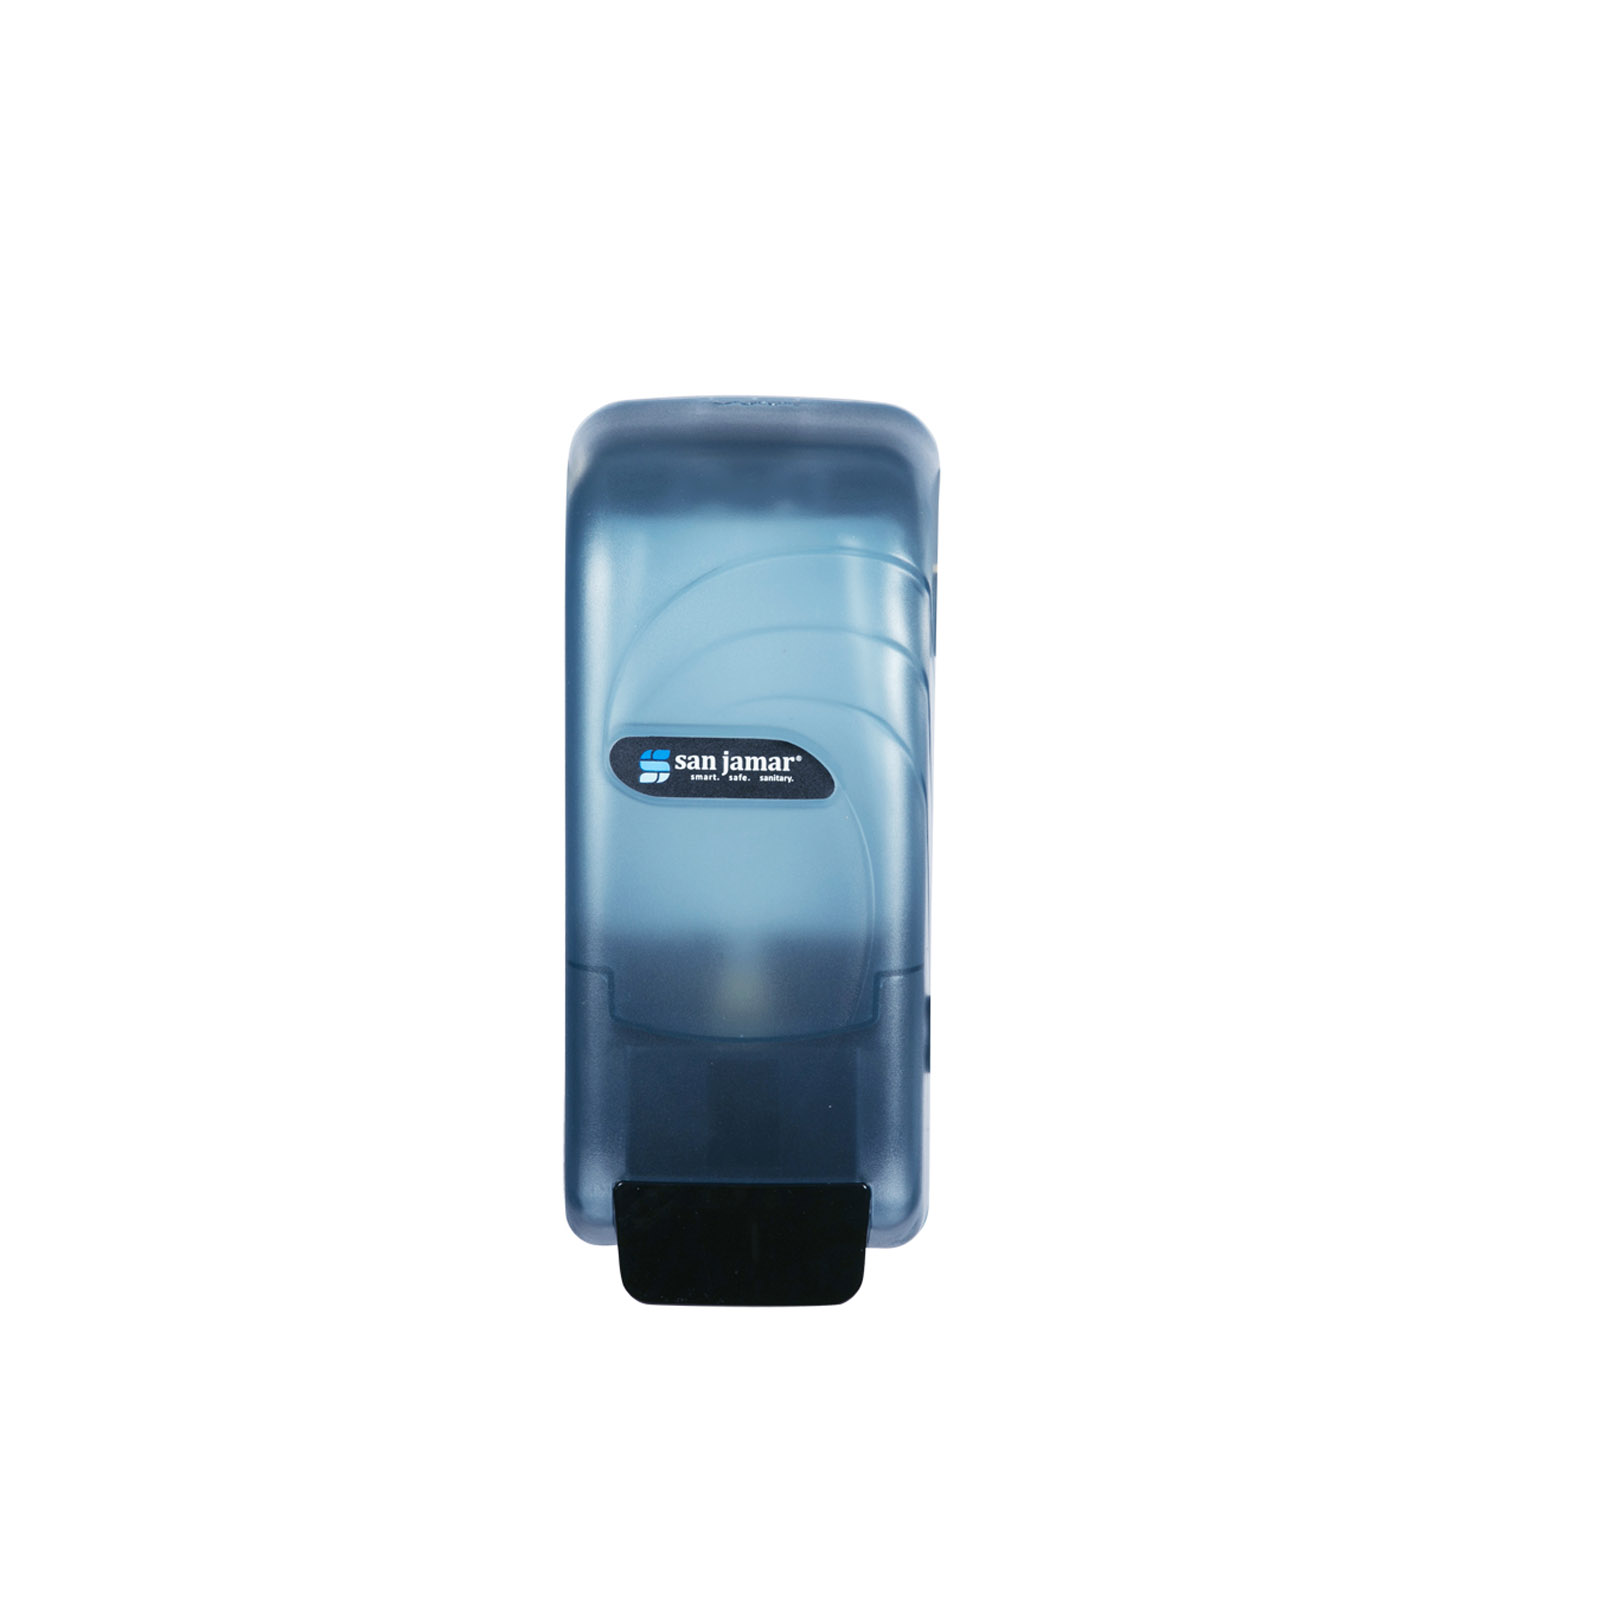 San Jamar S890TBL hand soap / sanitizer dispenser